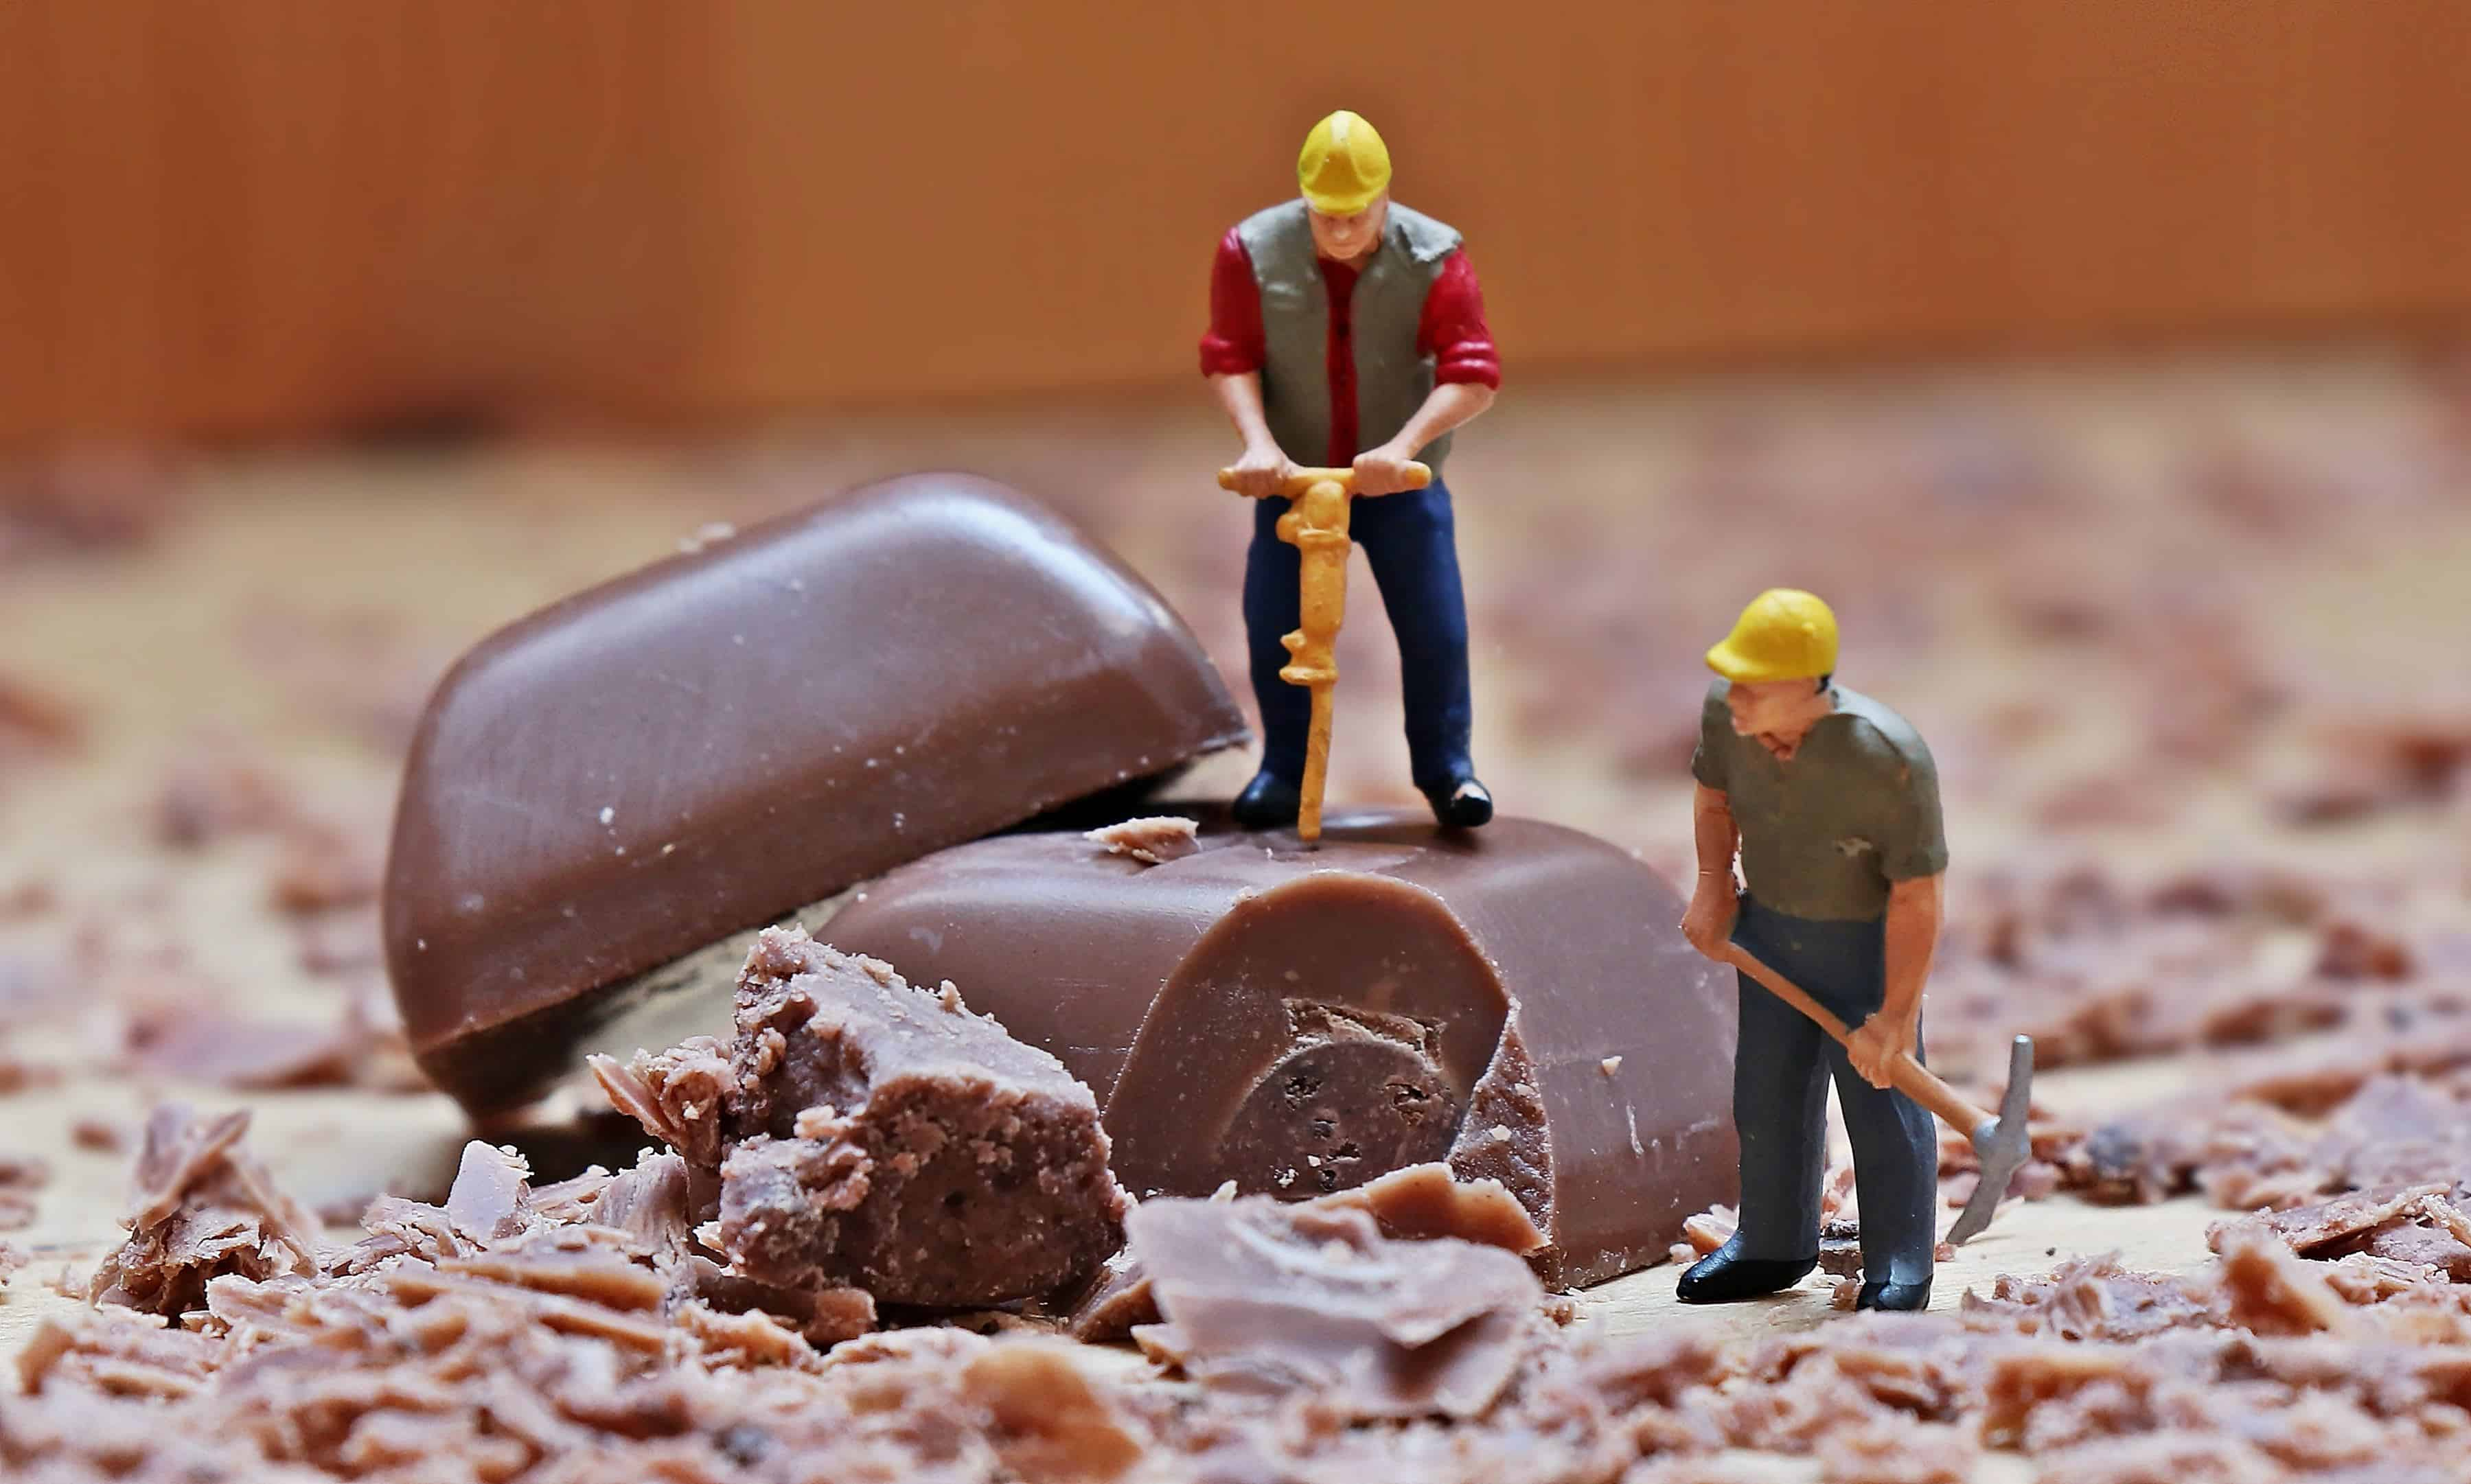 Free Picture Chocolate Indoor Toy Decoration Worker